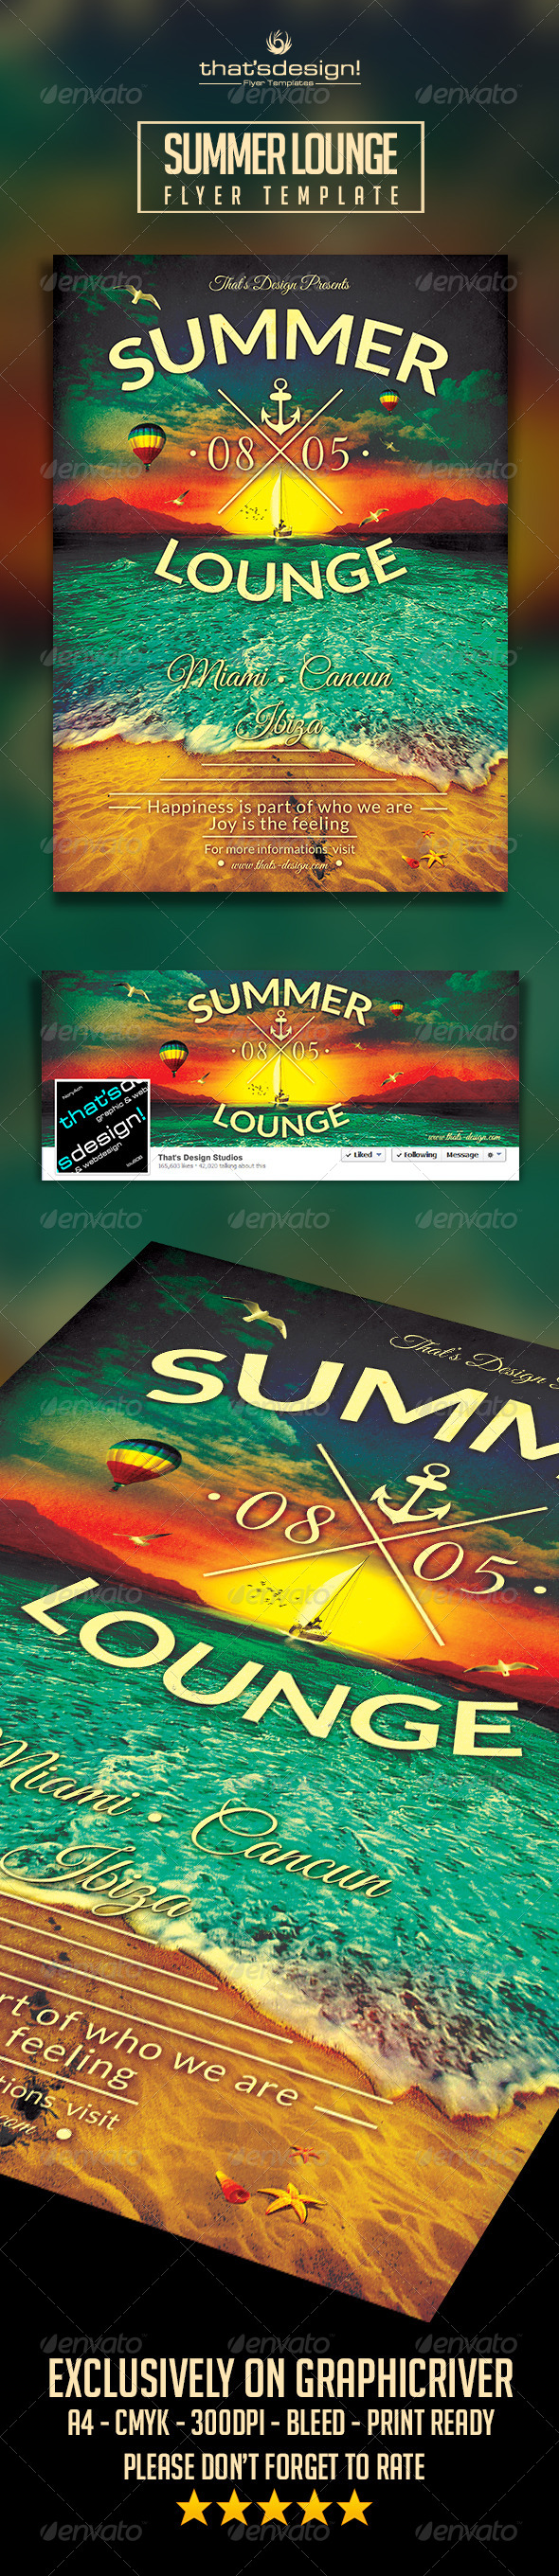 GraphicRiver Summer Lounge Flyer Template V3 8168675